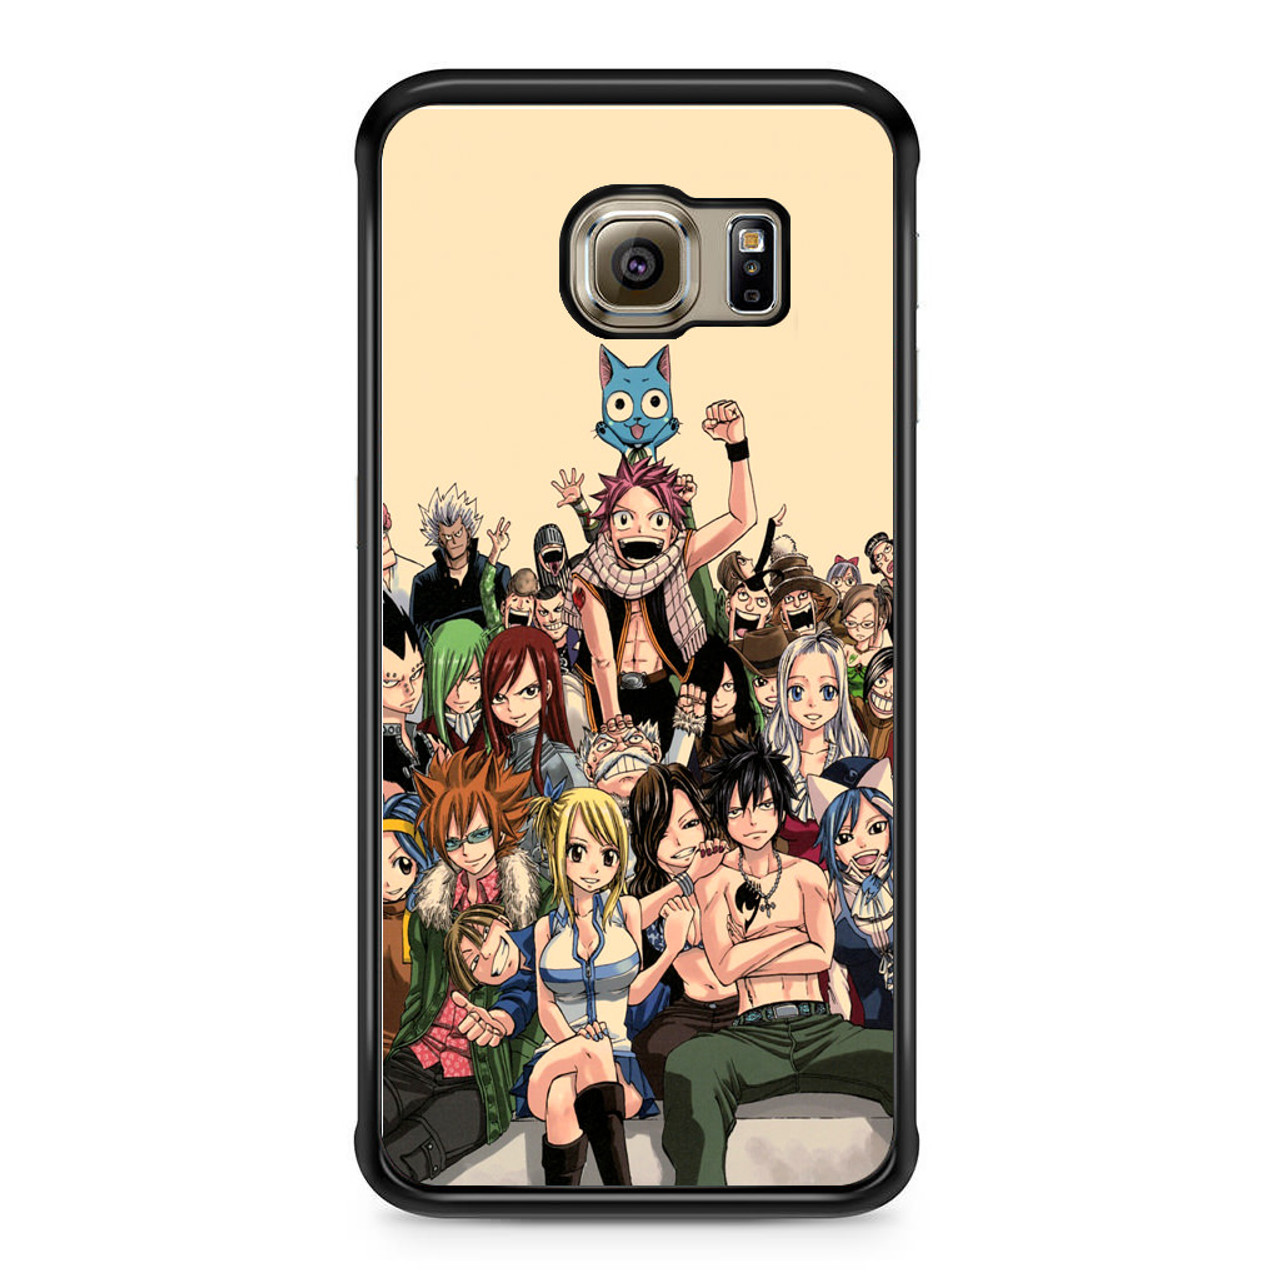 lowest price c714d fa50a Fairy Tail Characers Samsung Galaxy S6 Edge Case